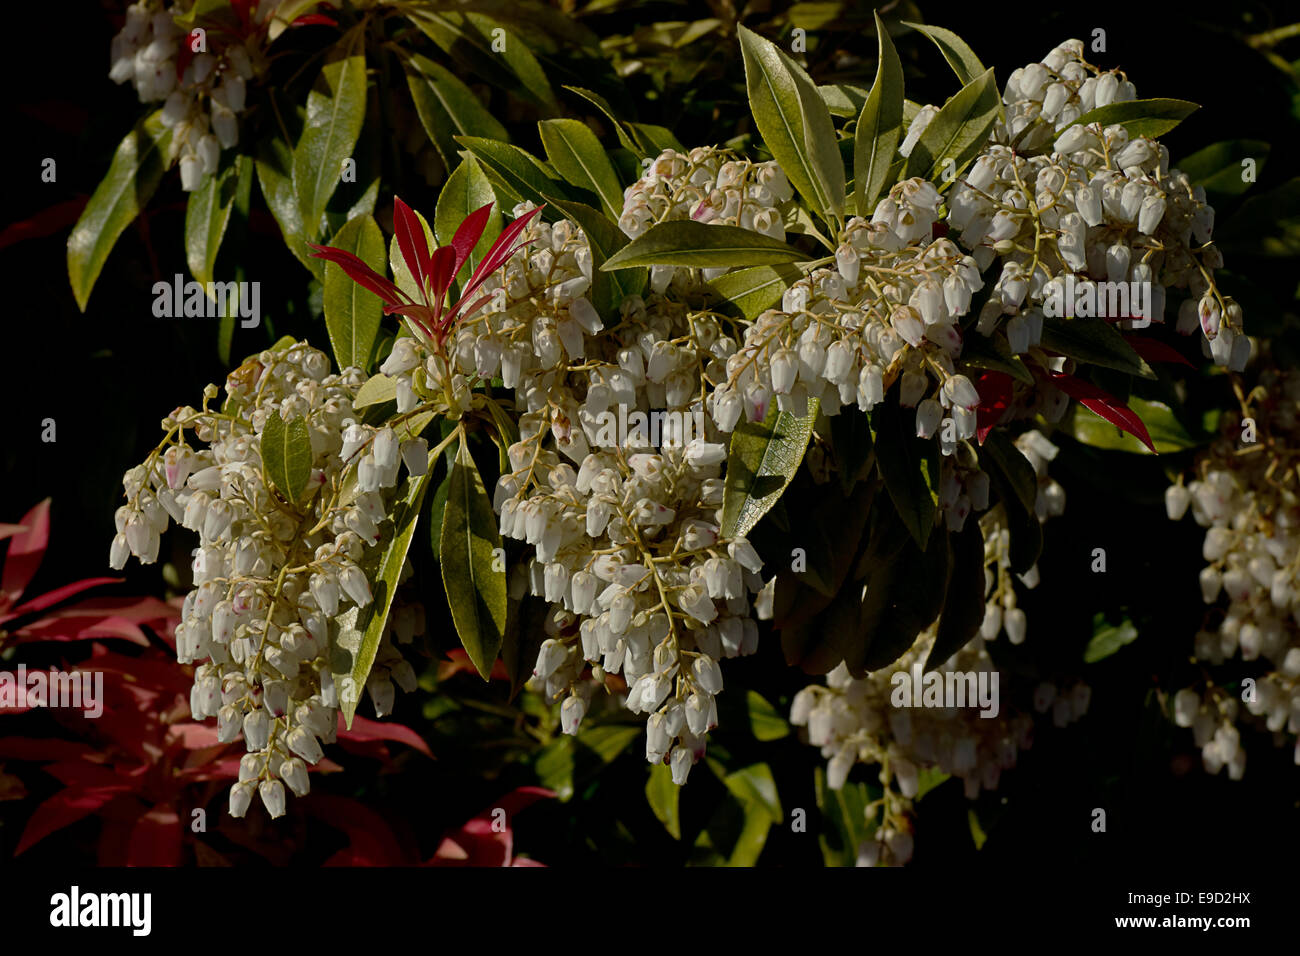 White Japonica Flowers And Red Leaves Stock Photo 74660822 Alamy